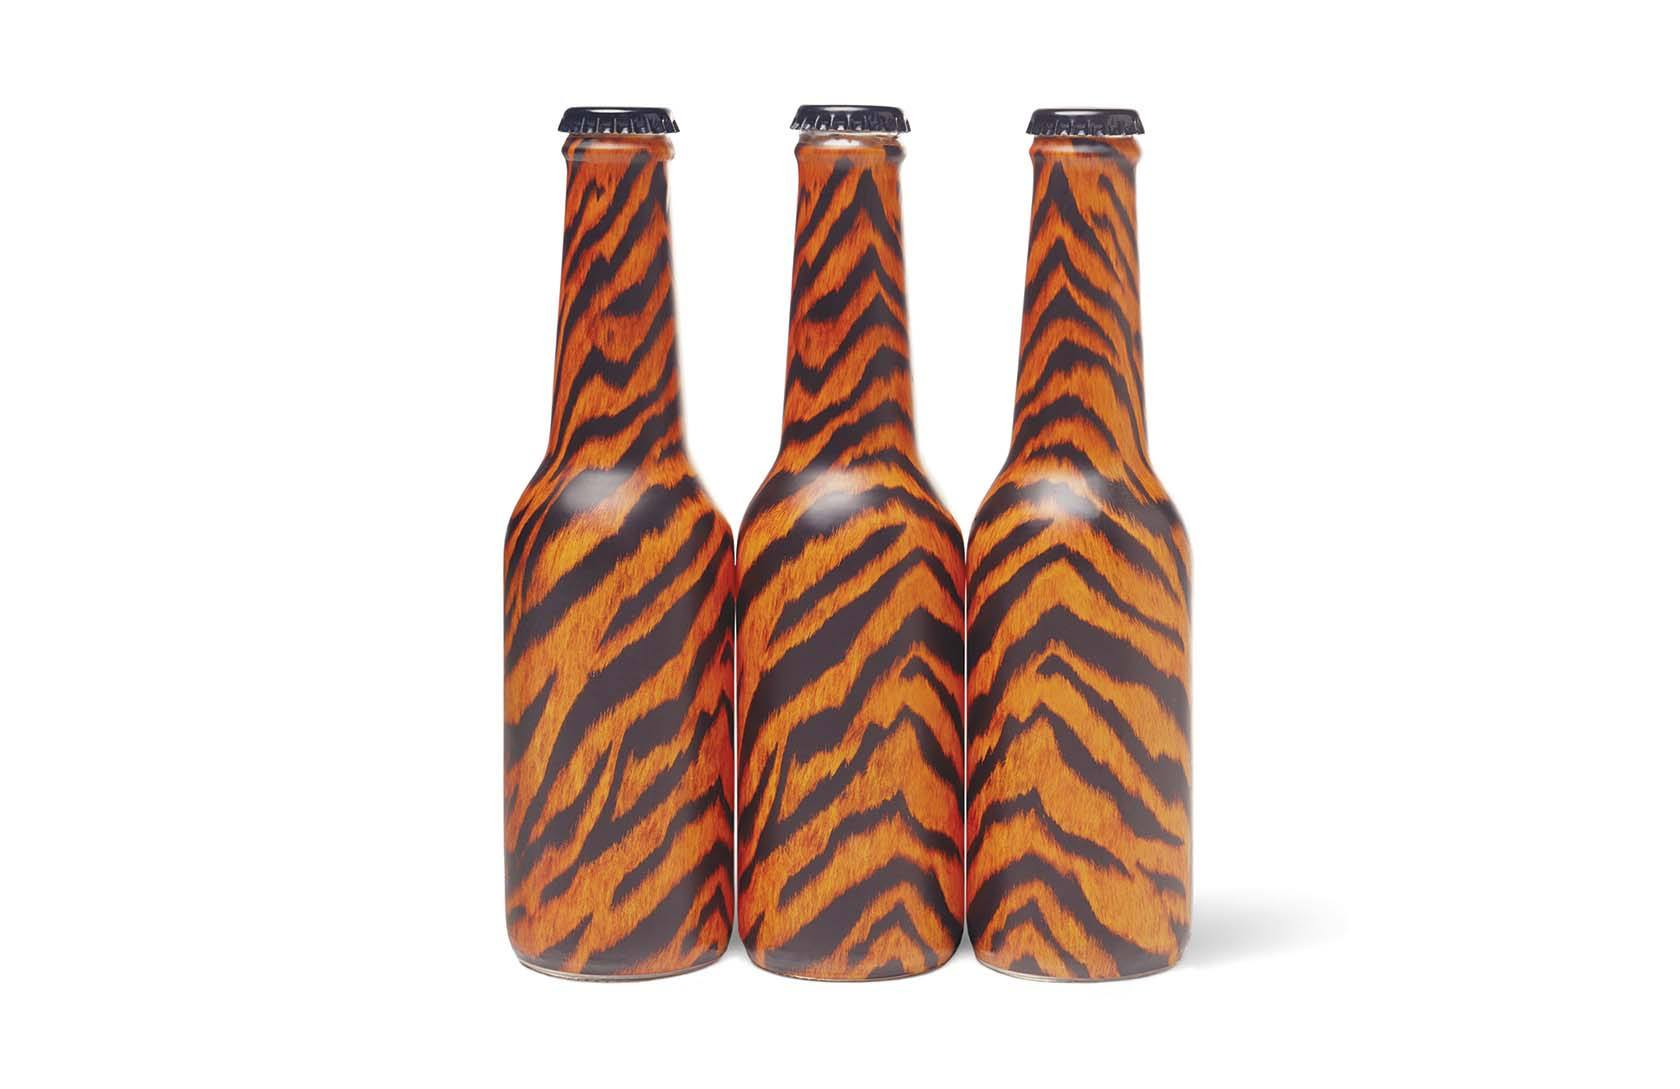 WMH-WILDBREW-BOTTLES-TIGER-PRINT-WEB image